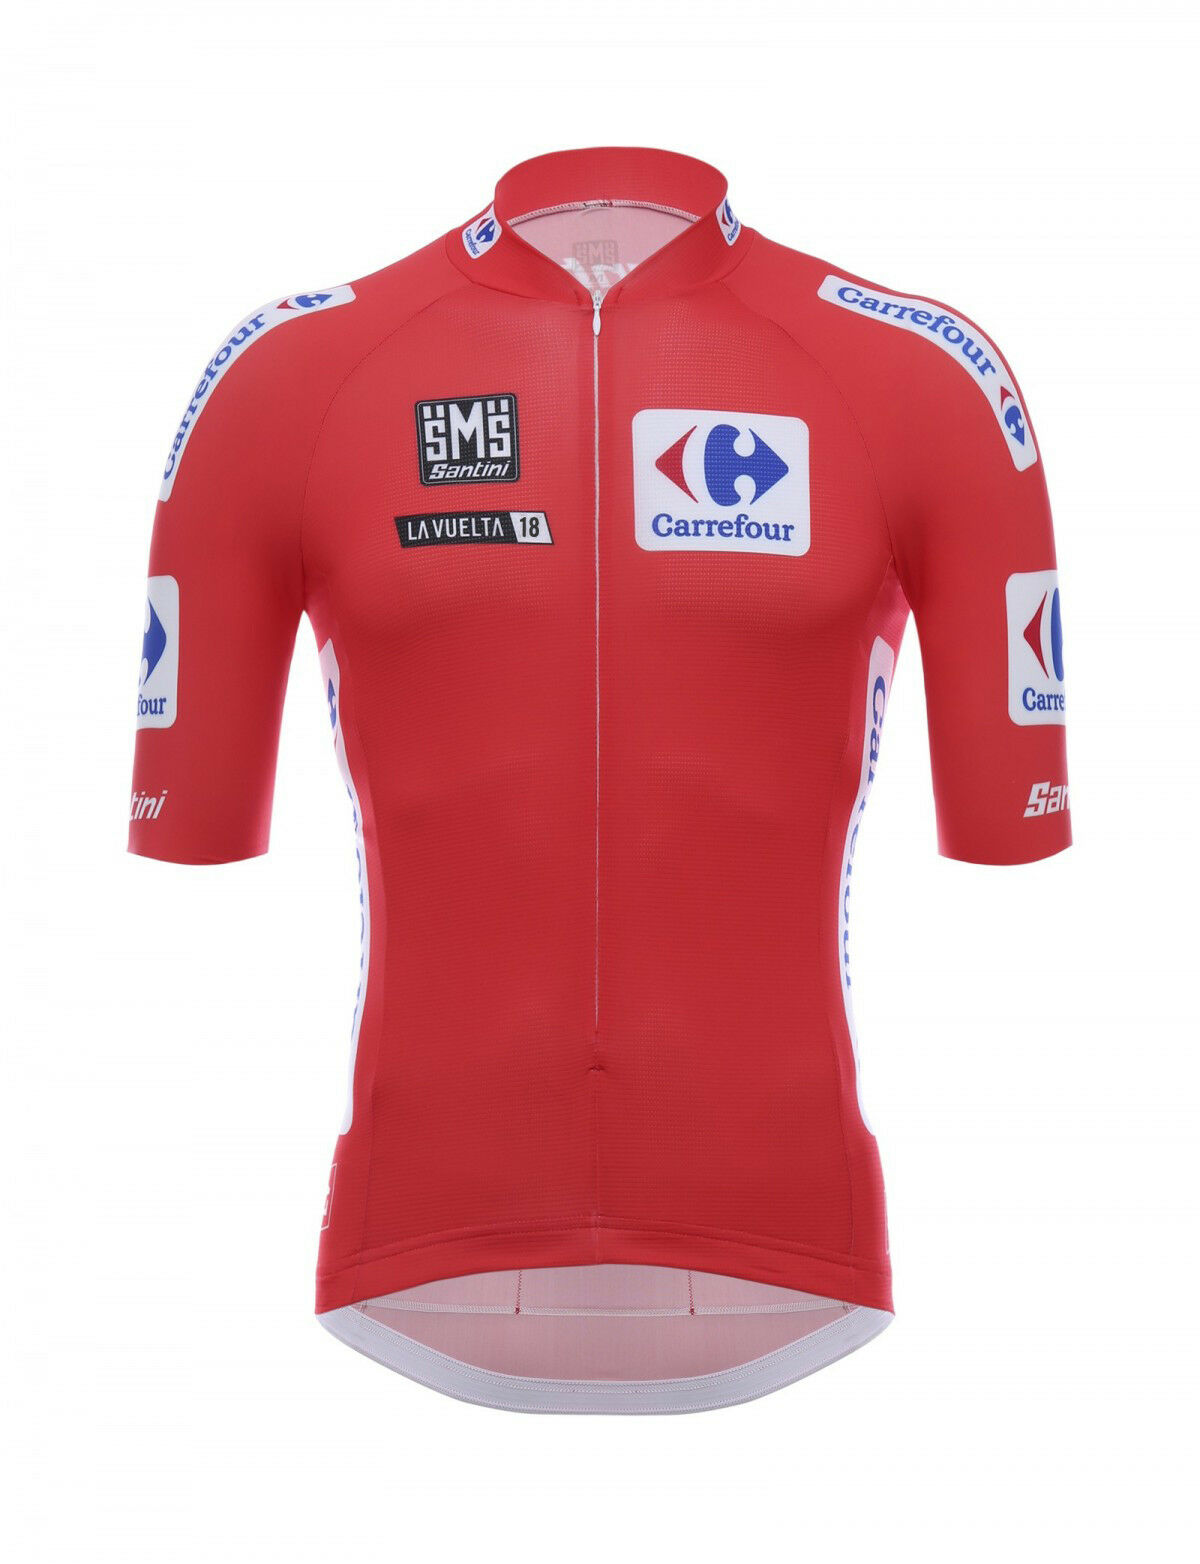 2018 La Vuelta rot Leaders Cycling Jersey Made in  by Santini